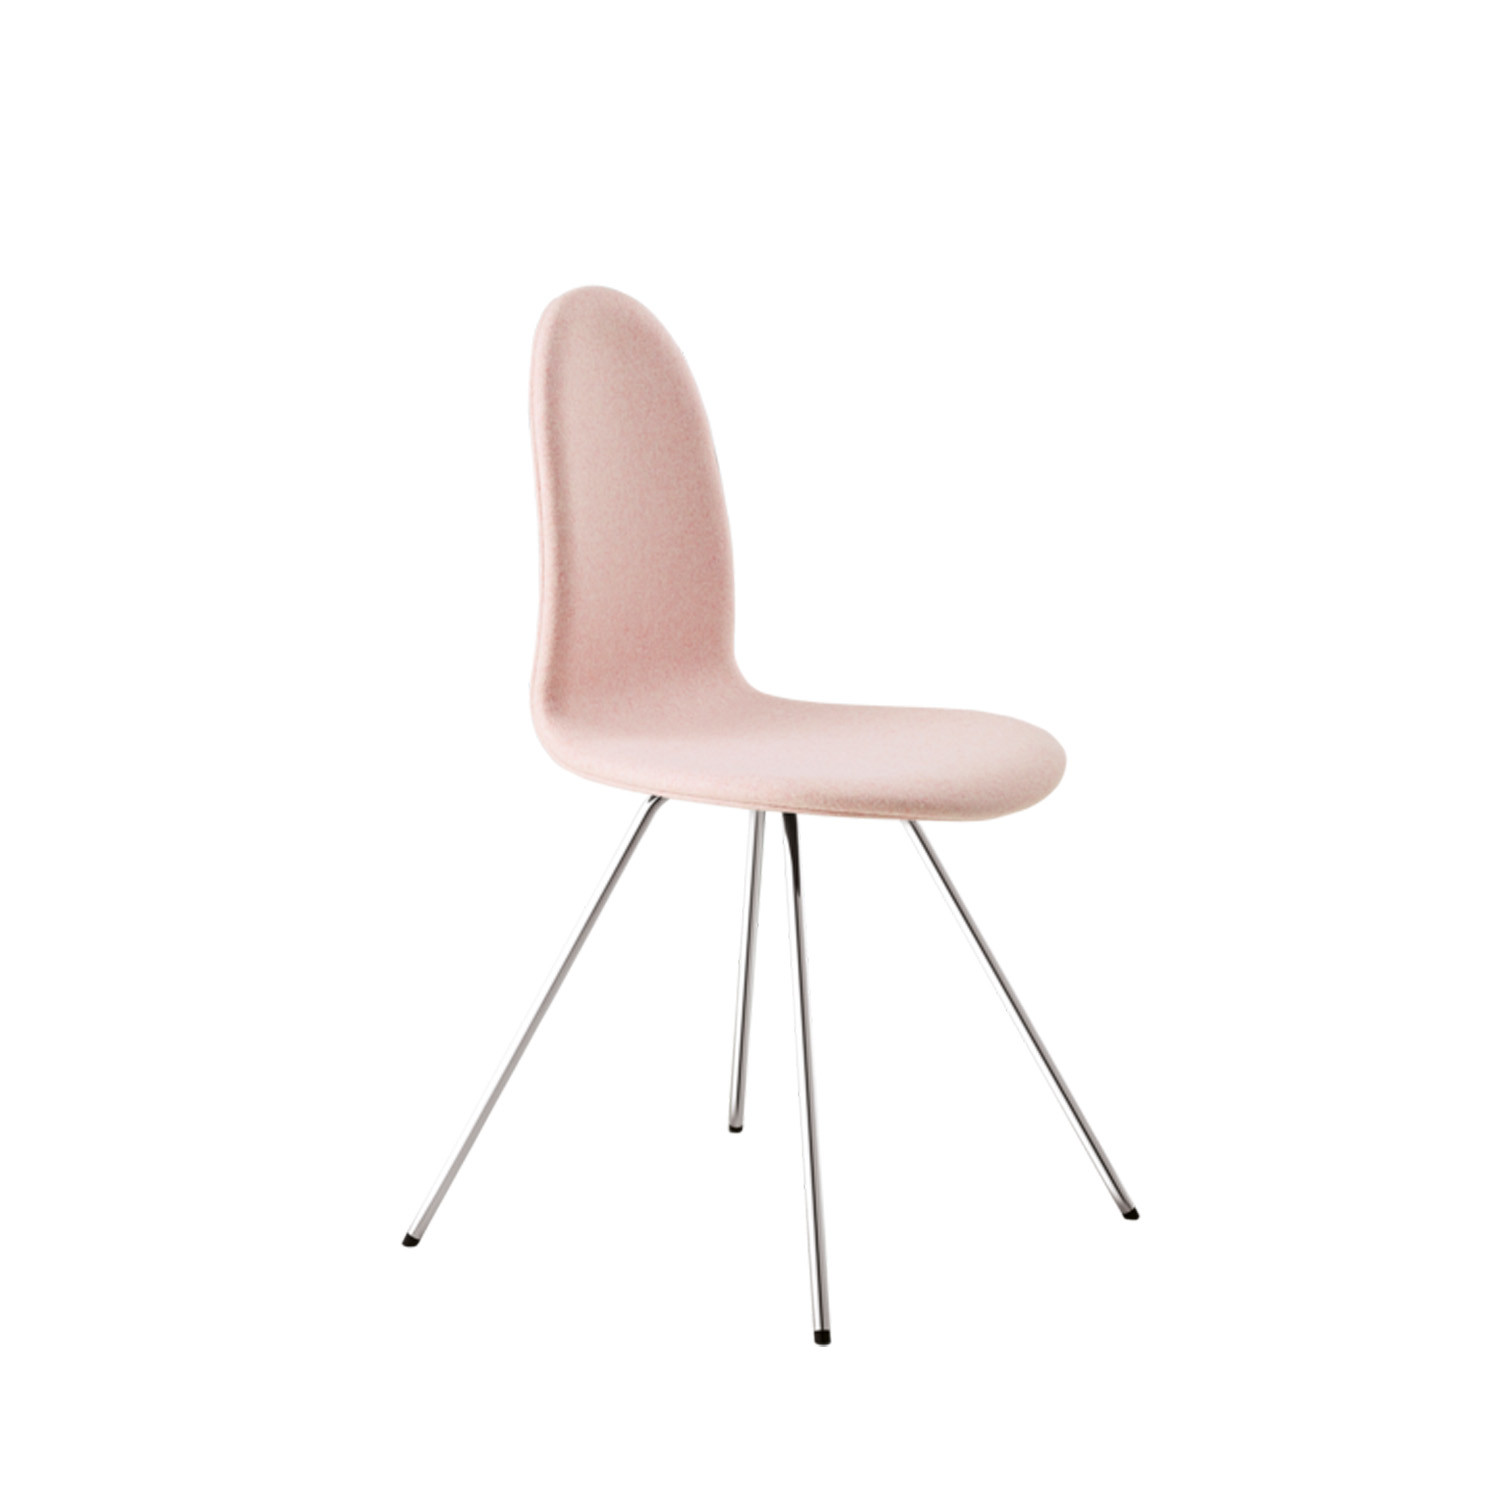 Arne Jacobsen's Tongue Chair